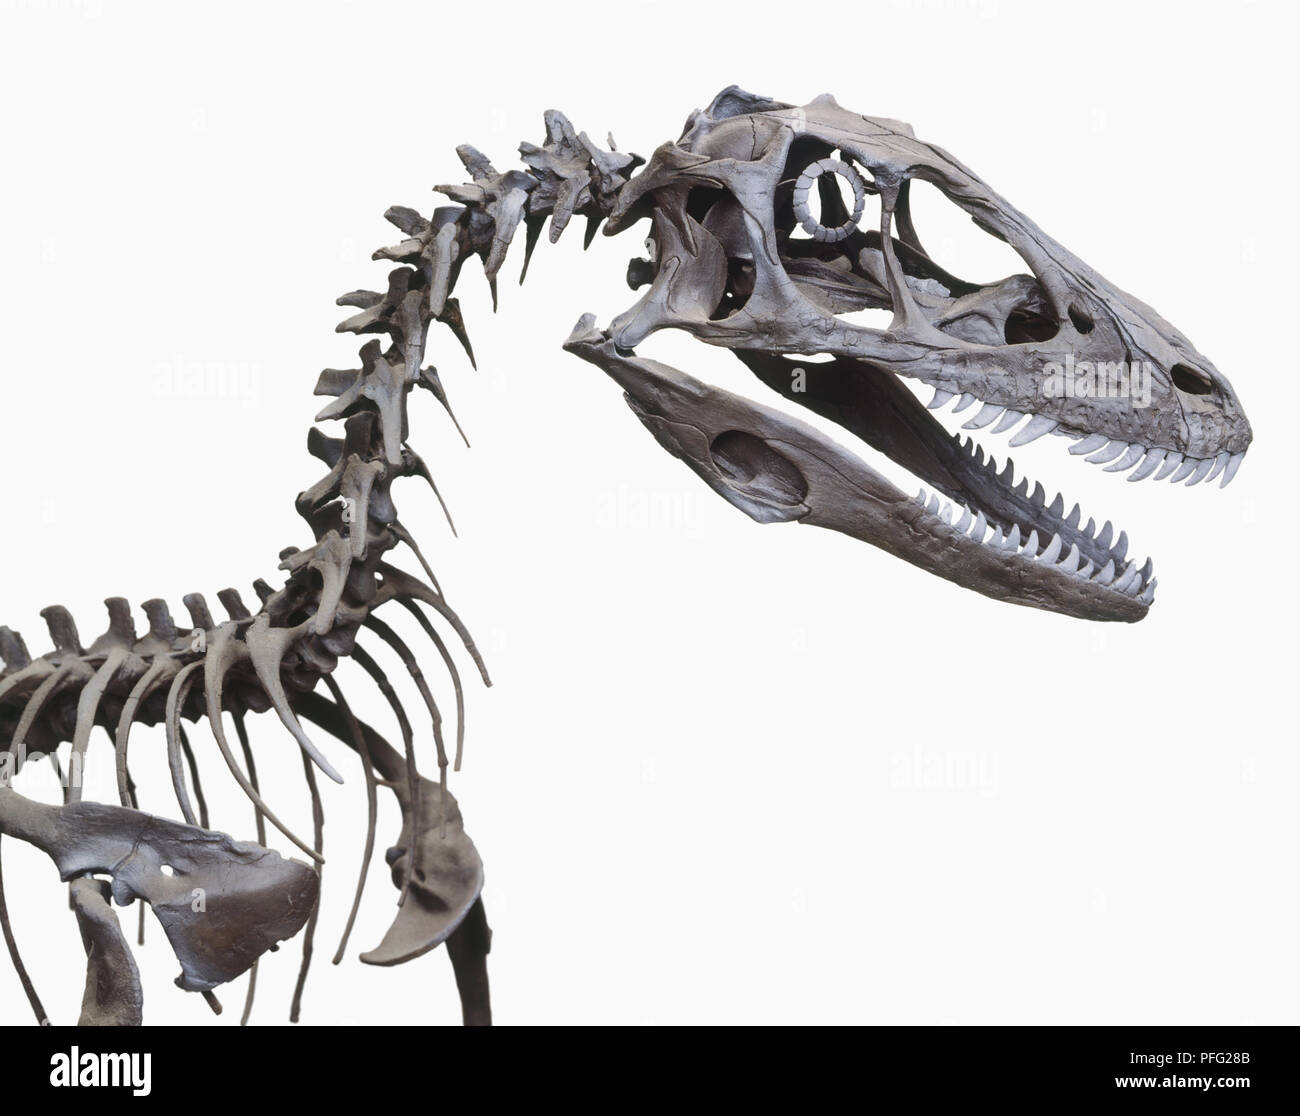 Skeleton of a Deinonychus - Stock Image